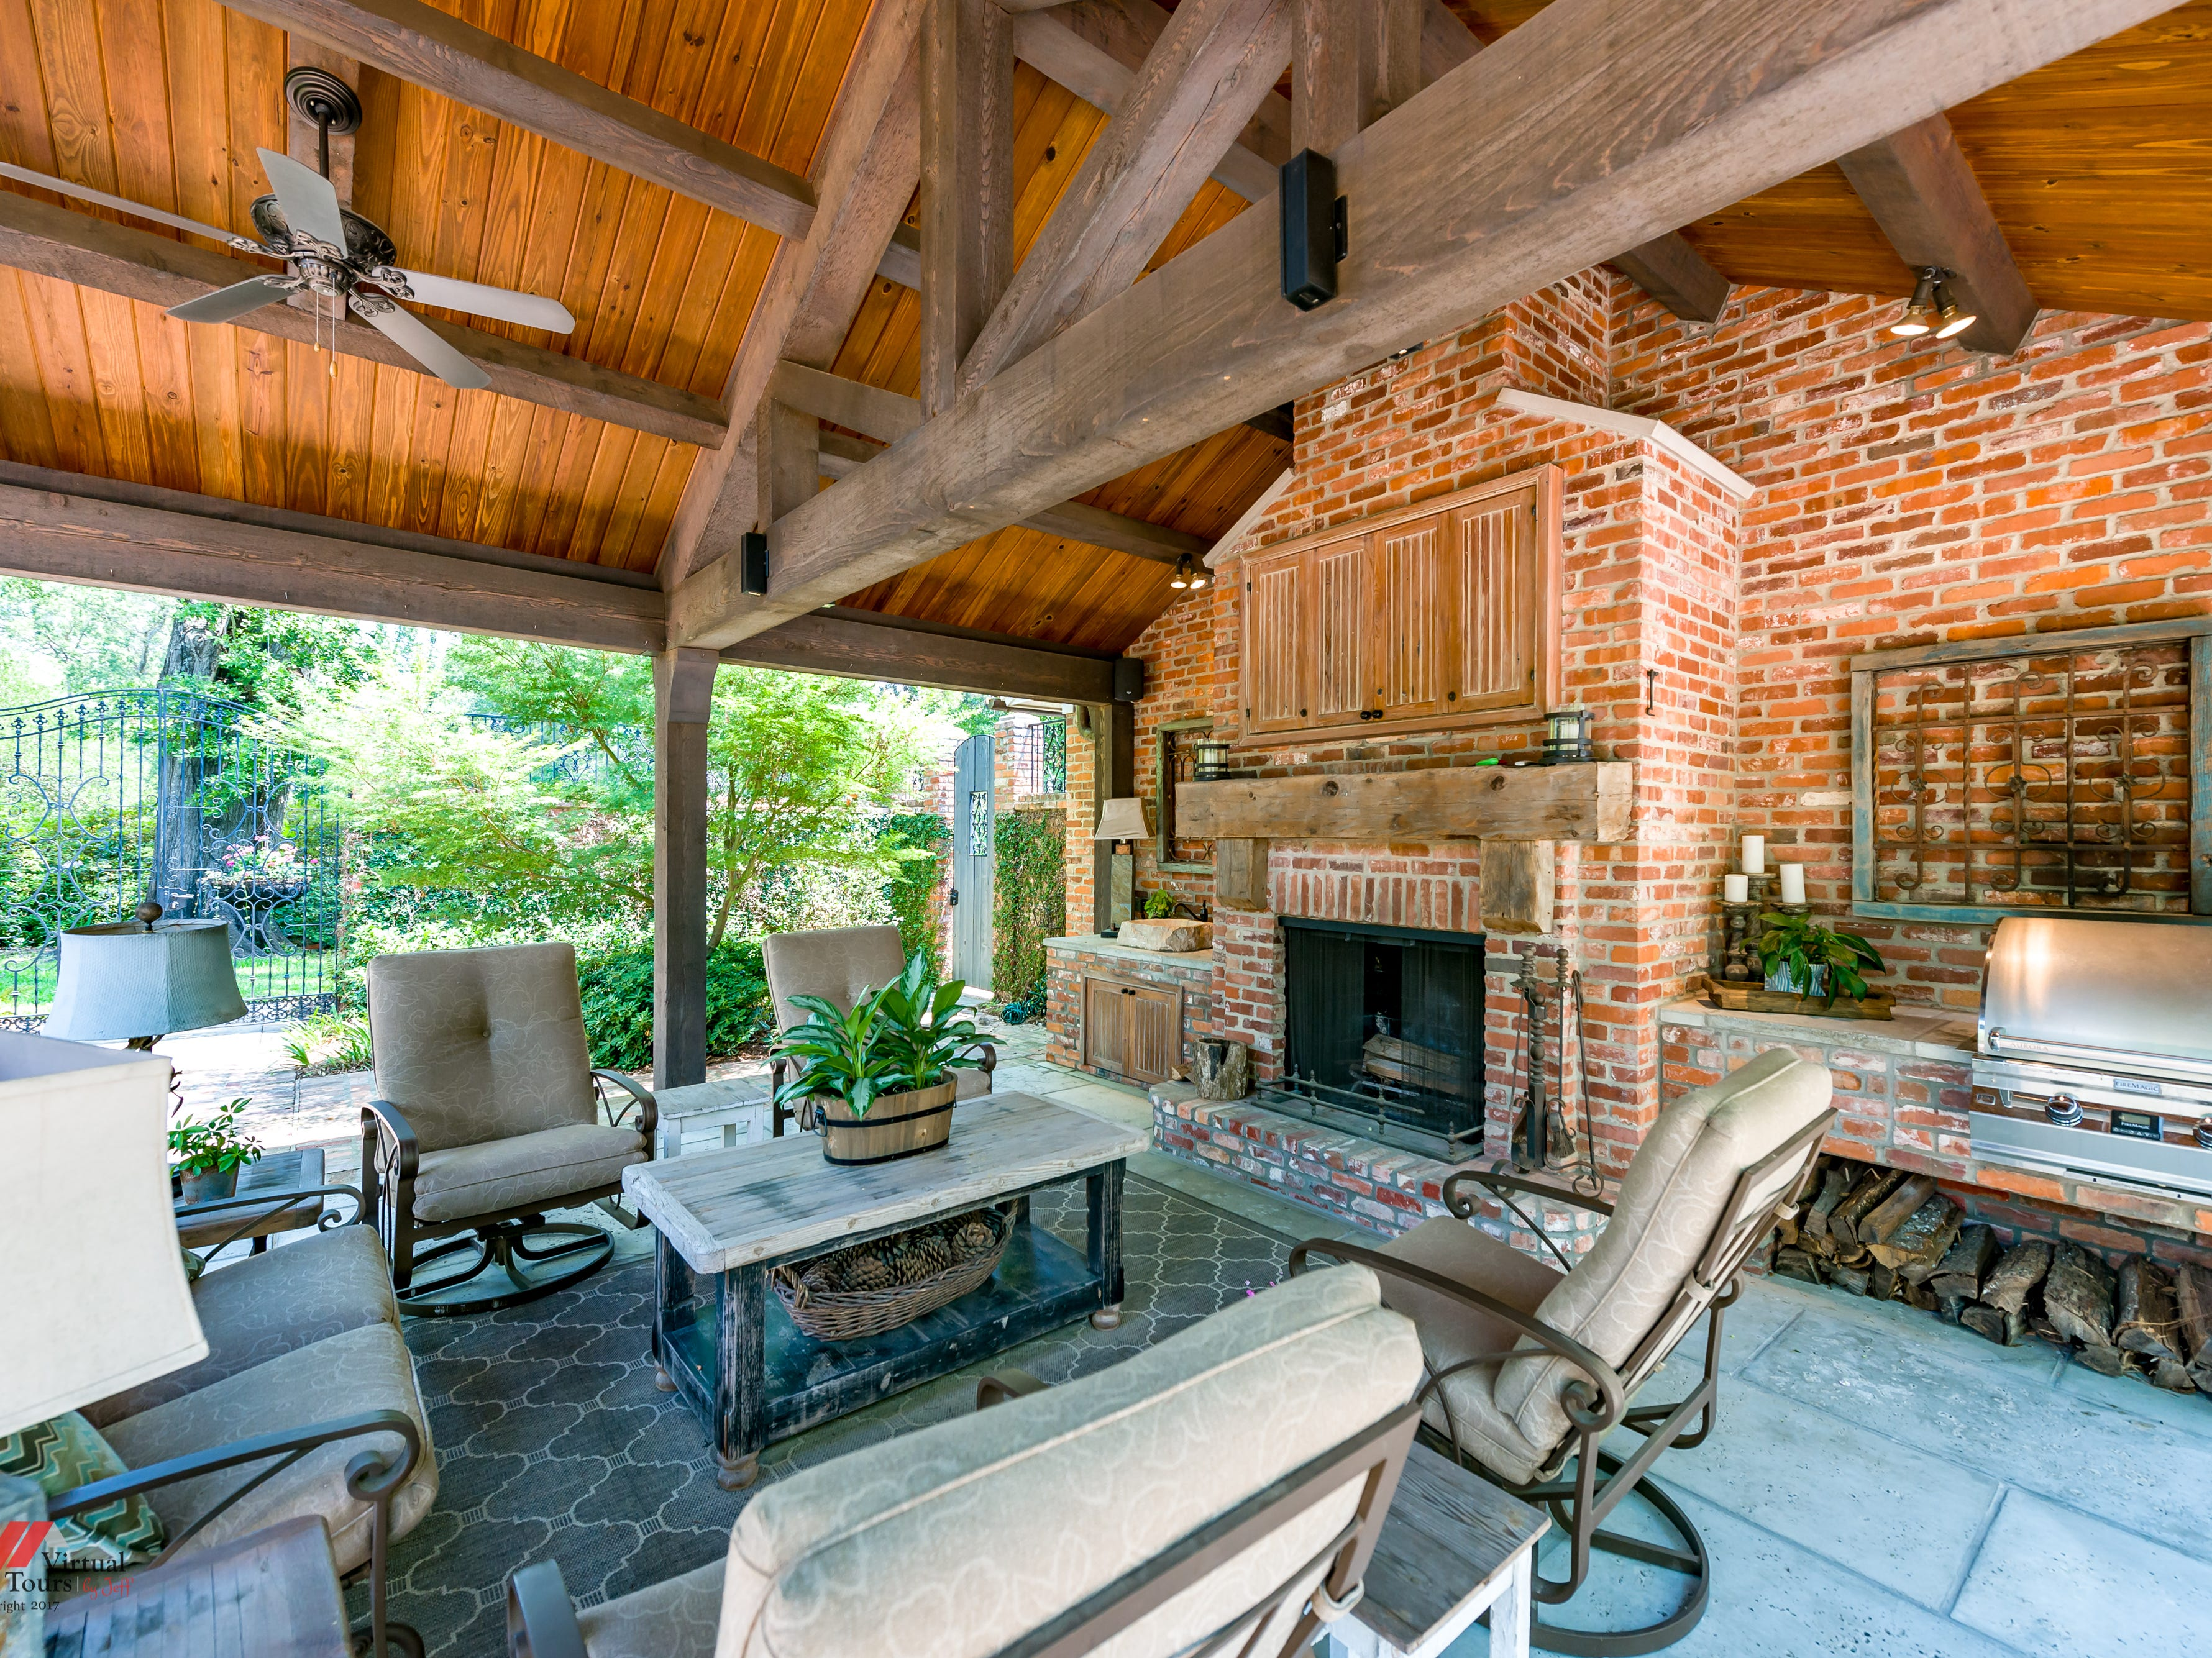 The outdoor kitchen features a cathedral ceiling and wood burning fireplace.